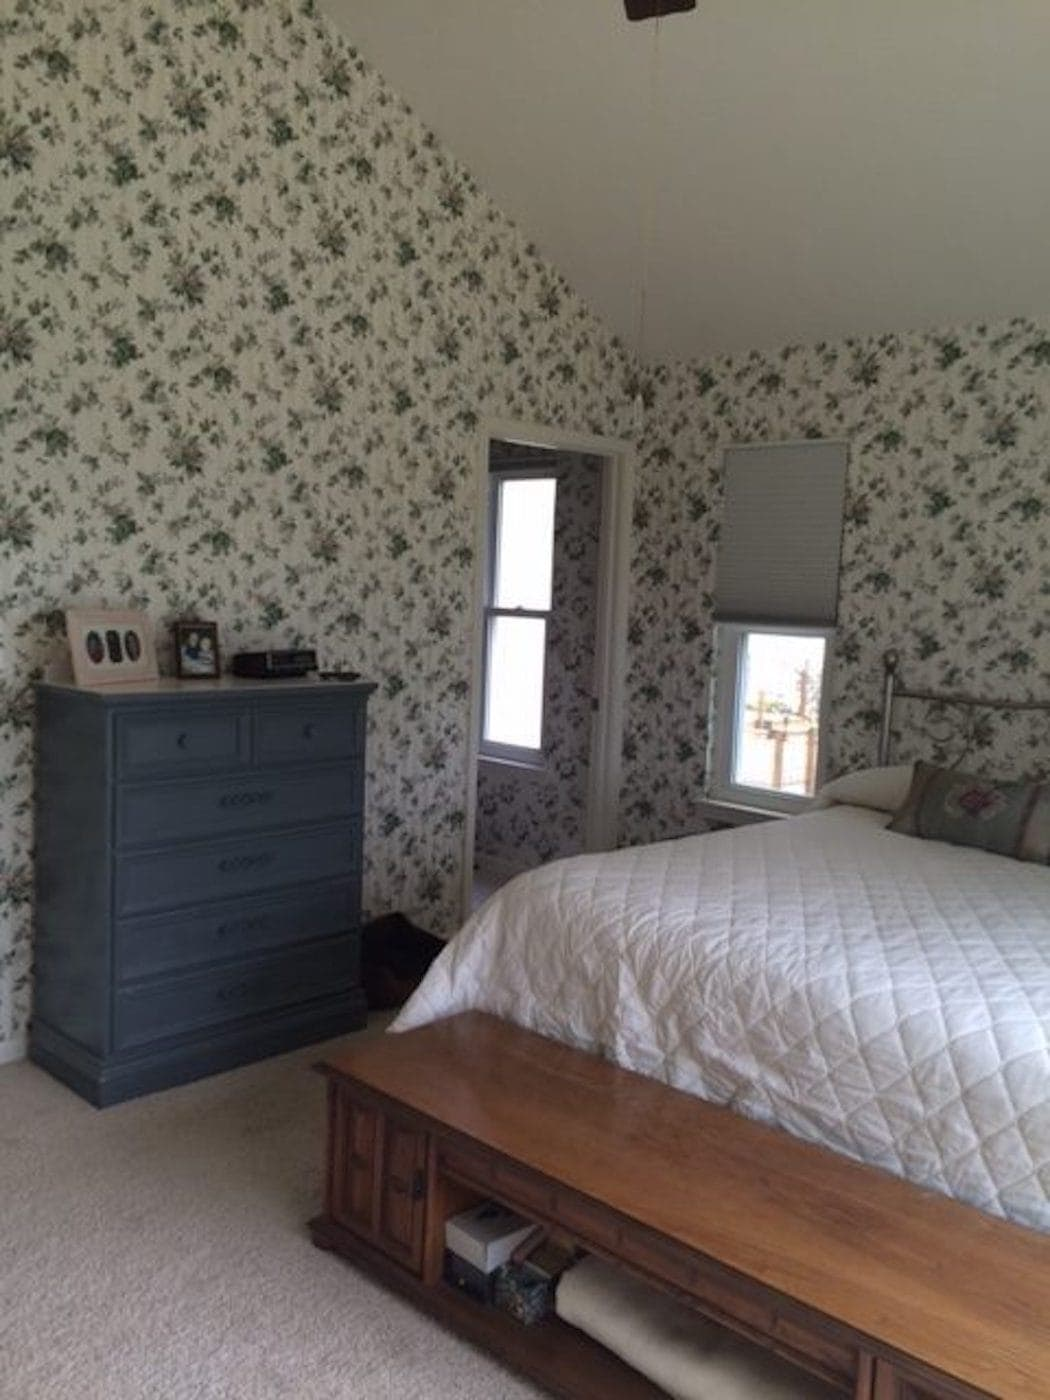 A dark bedroom with dated wallpaper on the walls and several windows.